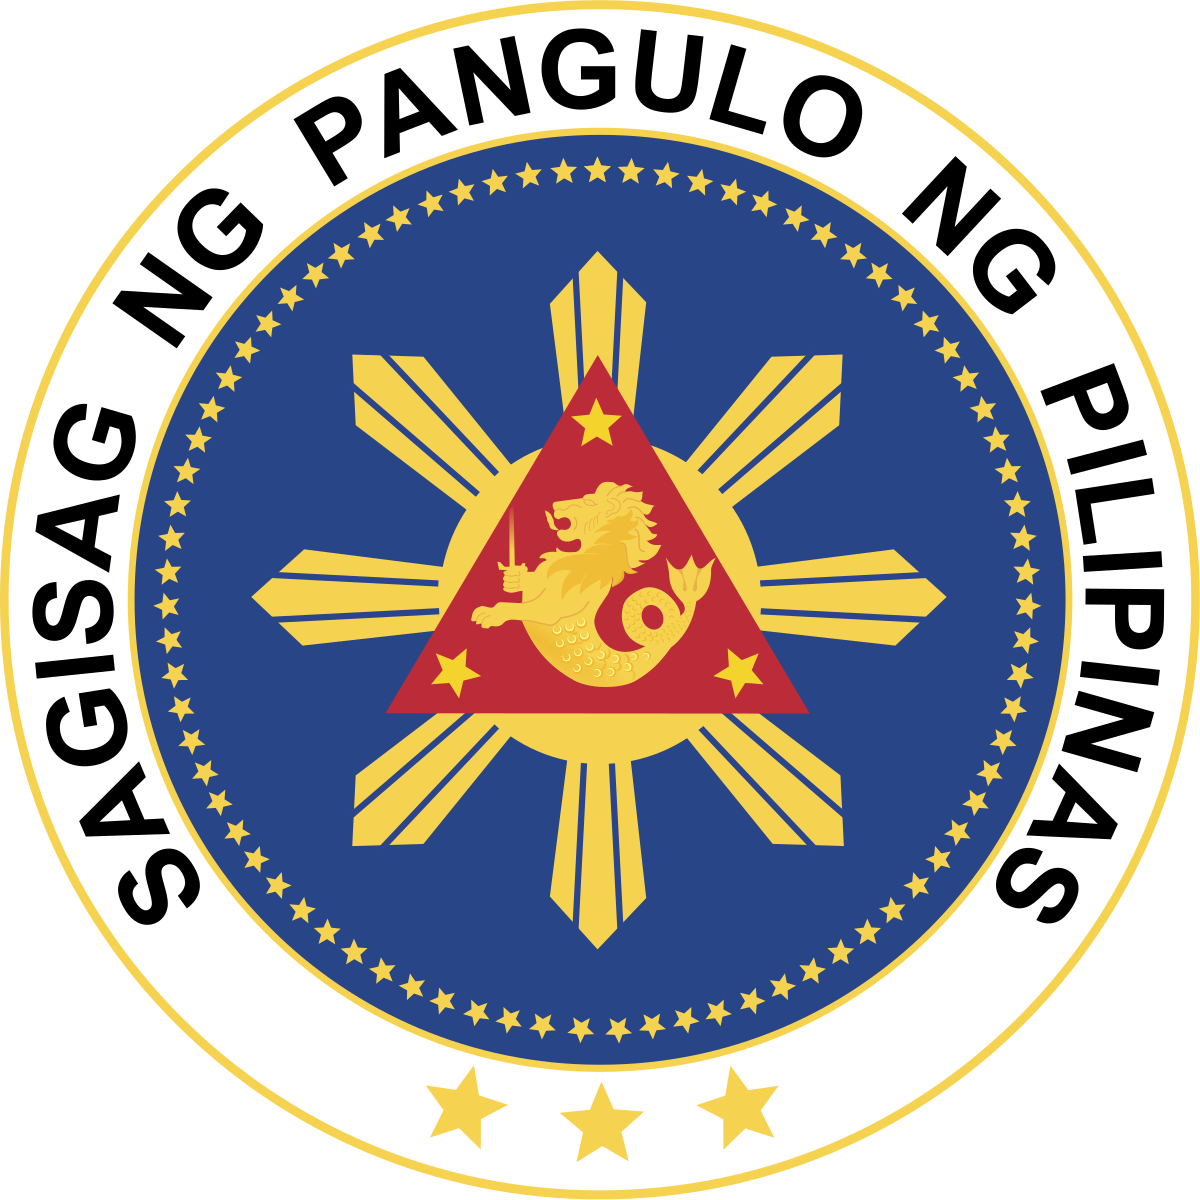 Presidents on money clipart black and white picture royalty free download Seal of the President of the Philippines - Wikipedia picture royalty free download